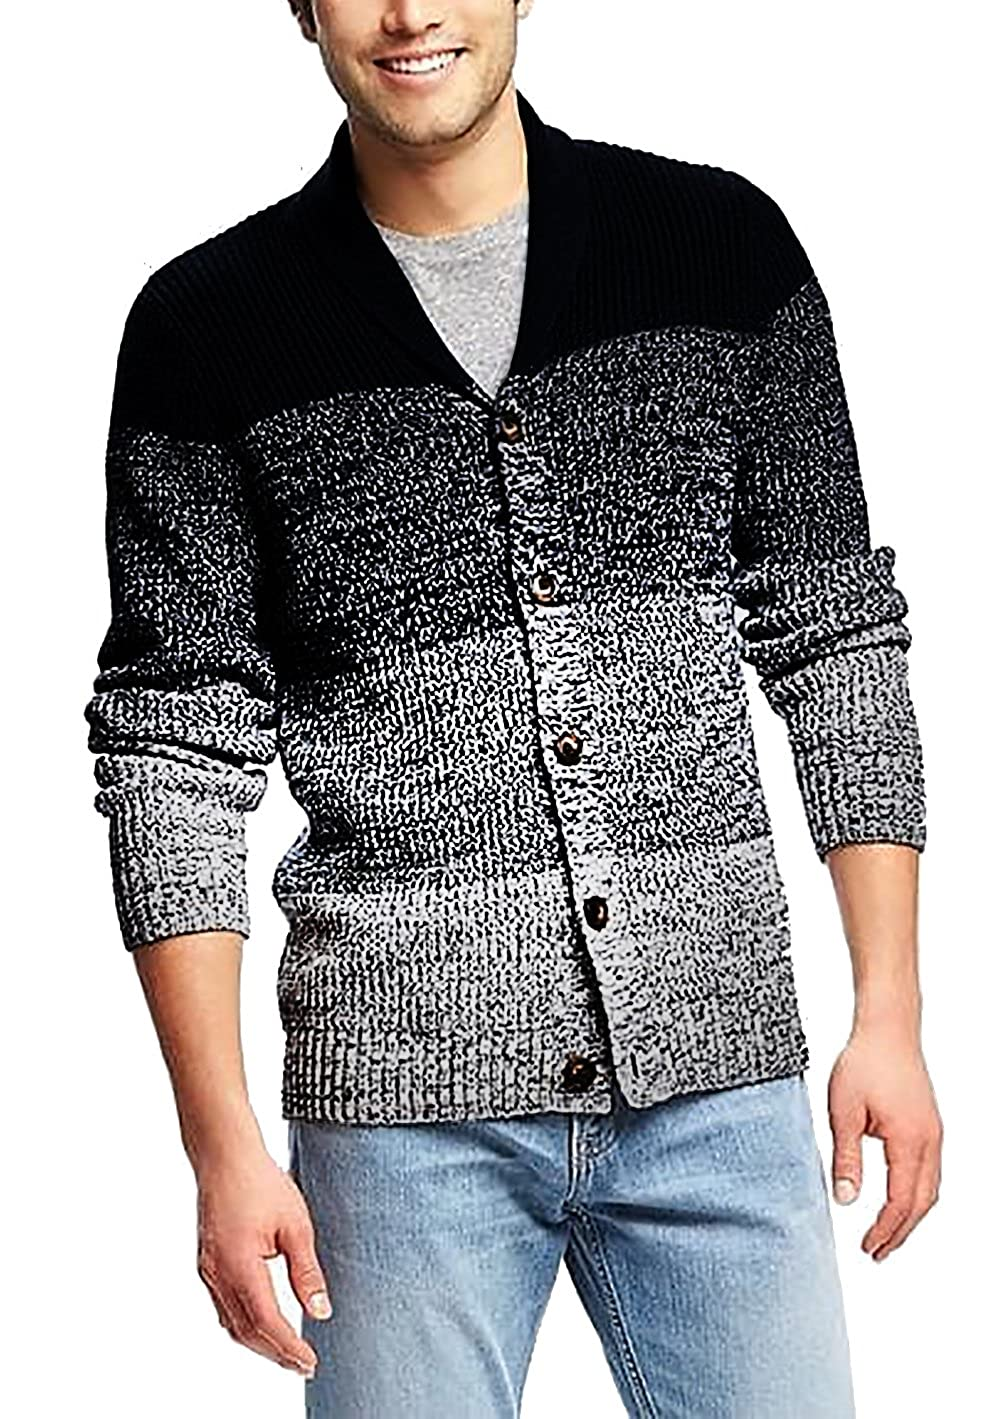 90afee6976a5 COOFANDY Men s Shawl Collar Cardigan Sweater Slim Fit Button Down Cardigan  Casual Knitwear Jacket at Amazon Men s Clothing store